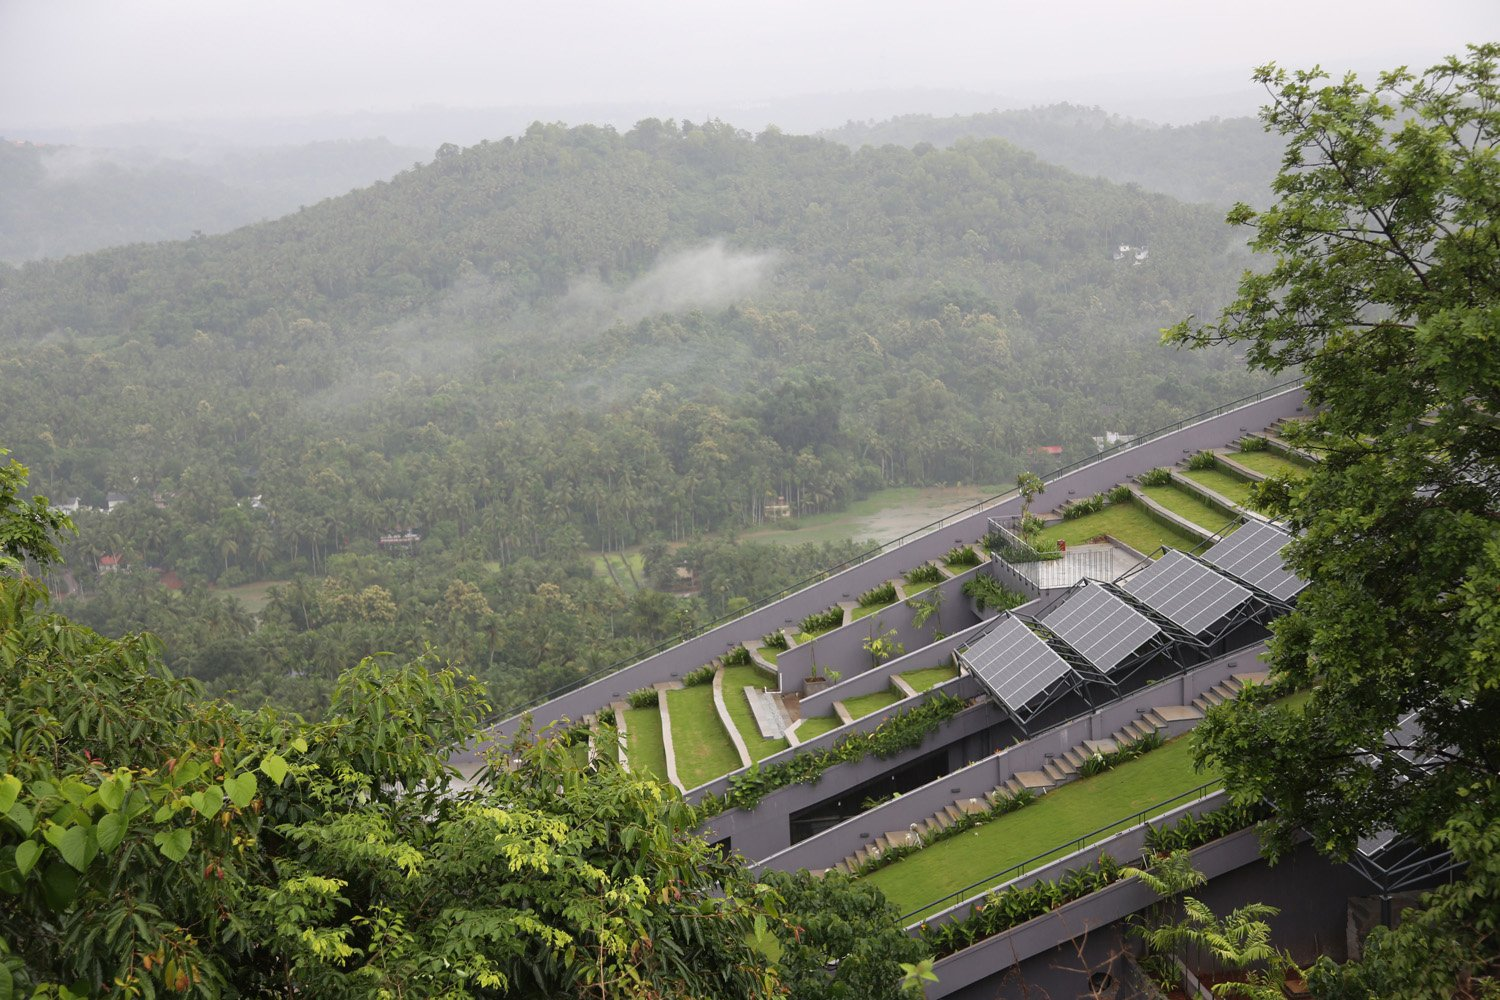 The Green Roof overlooking the wonderful views on the west. Ar. Sujith. G.S